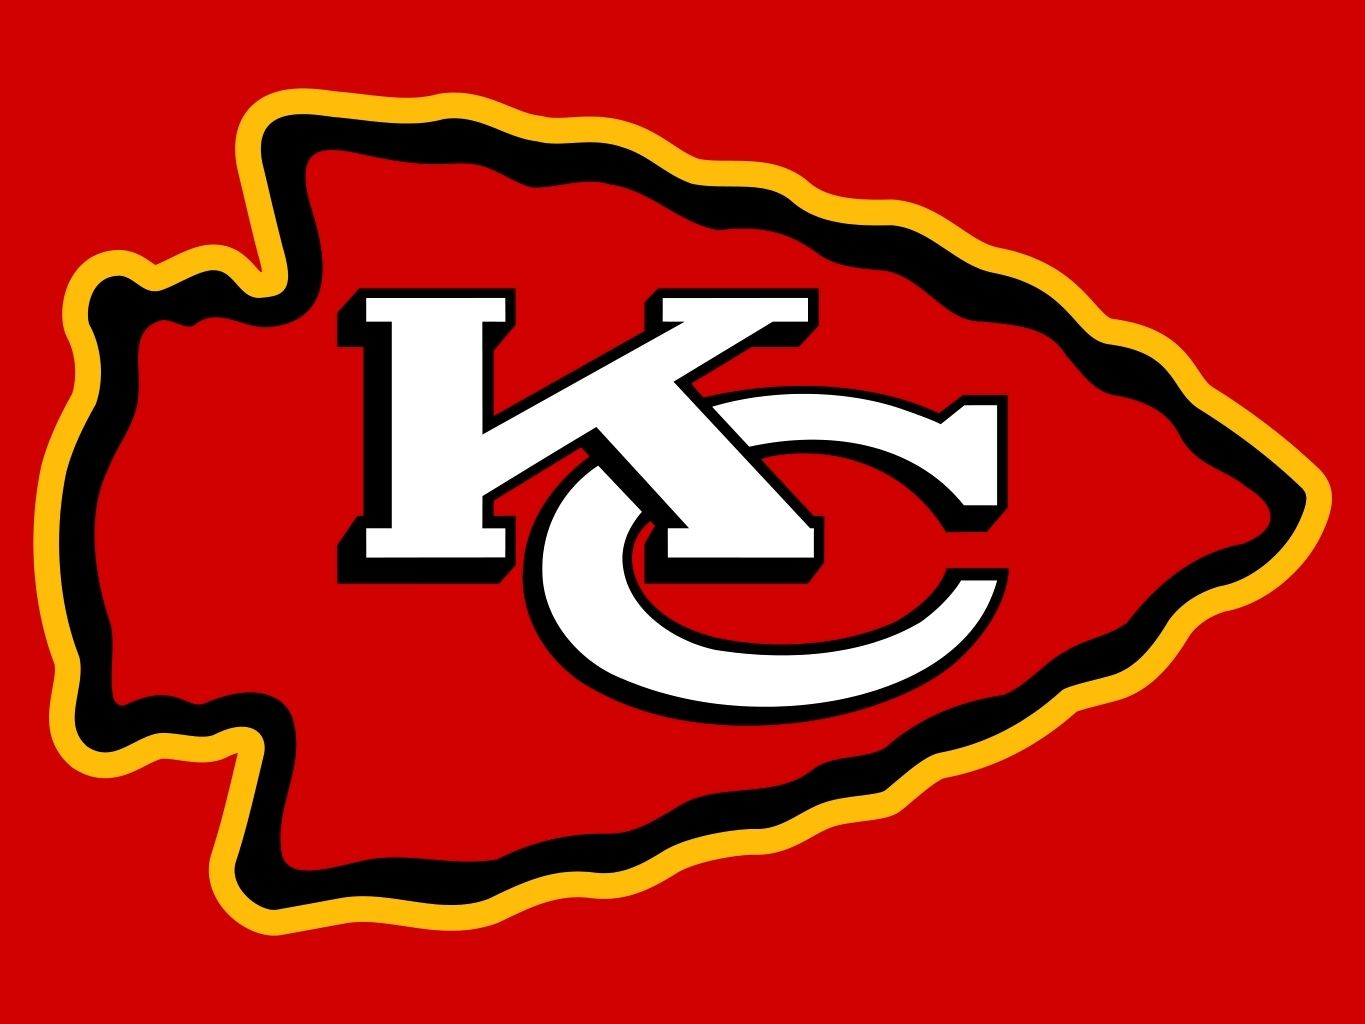 Pin By Diana Lehmann On Nfl Colors Kansas City Chiefs Logo Chiefs Logo Kansas City Chiefs